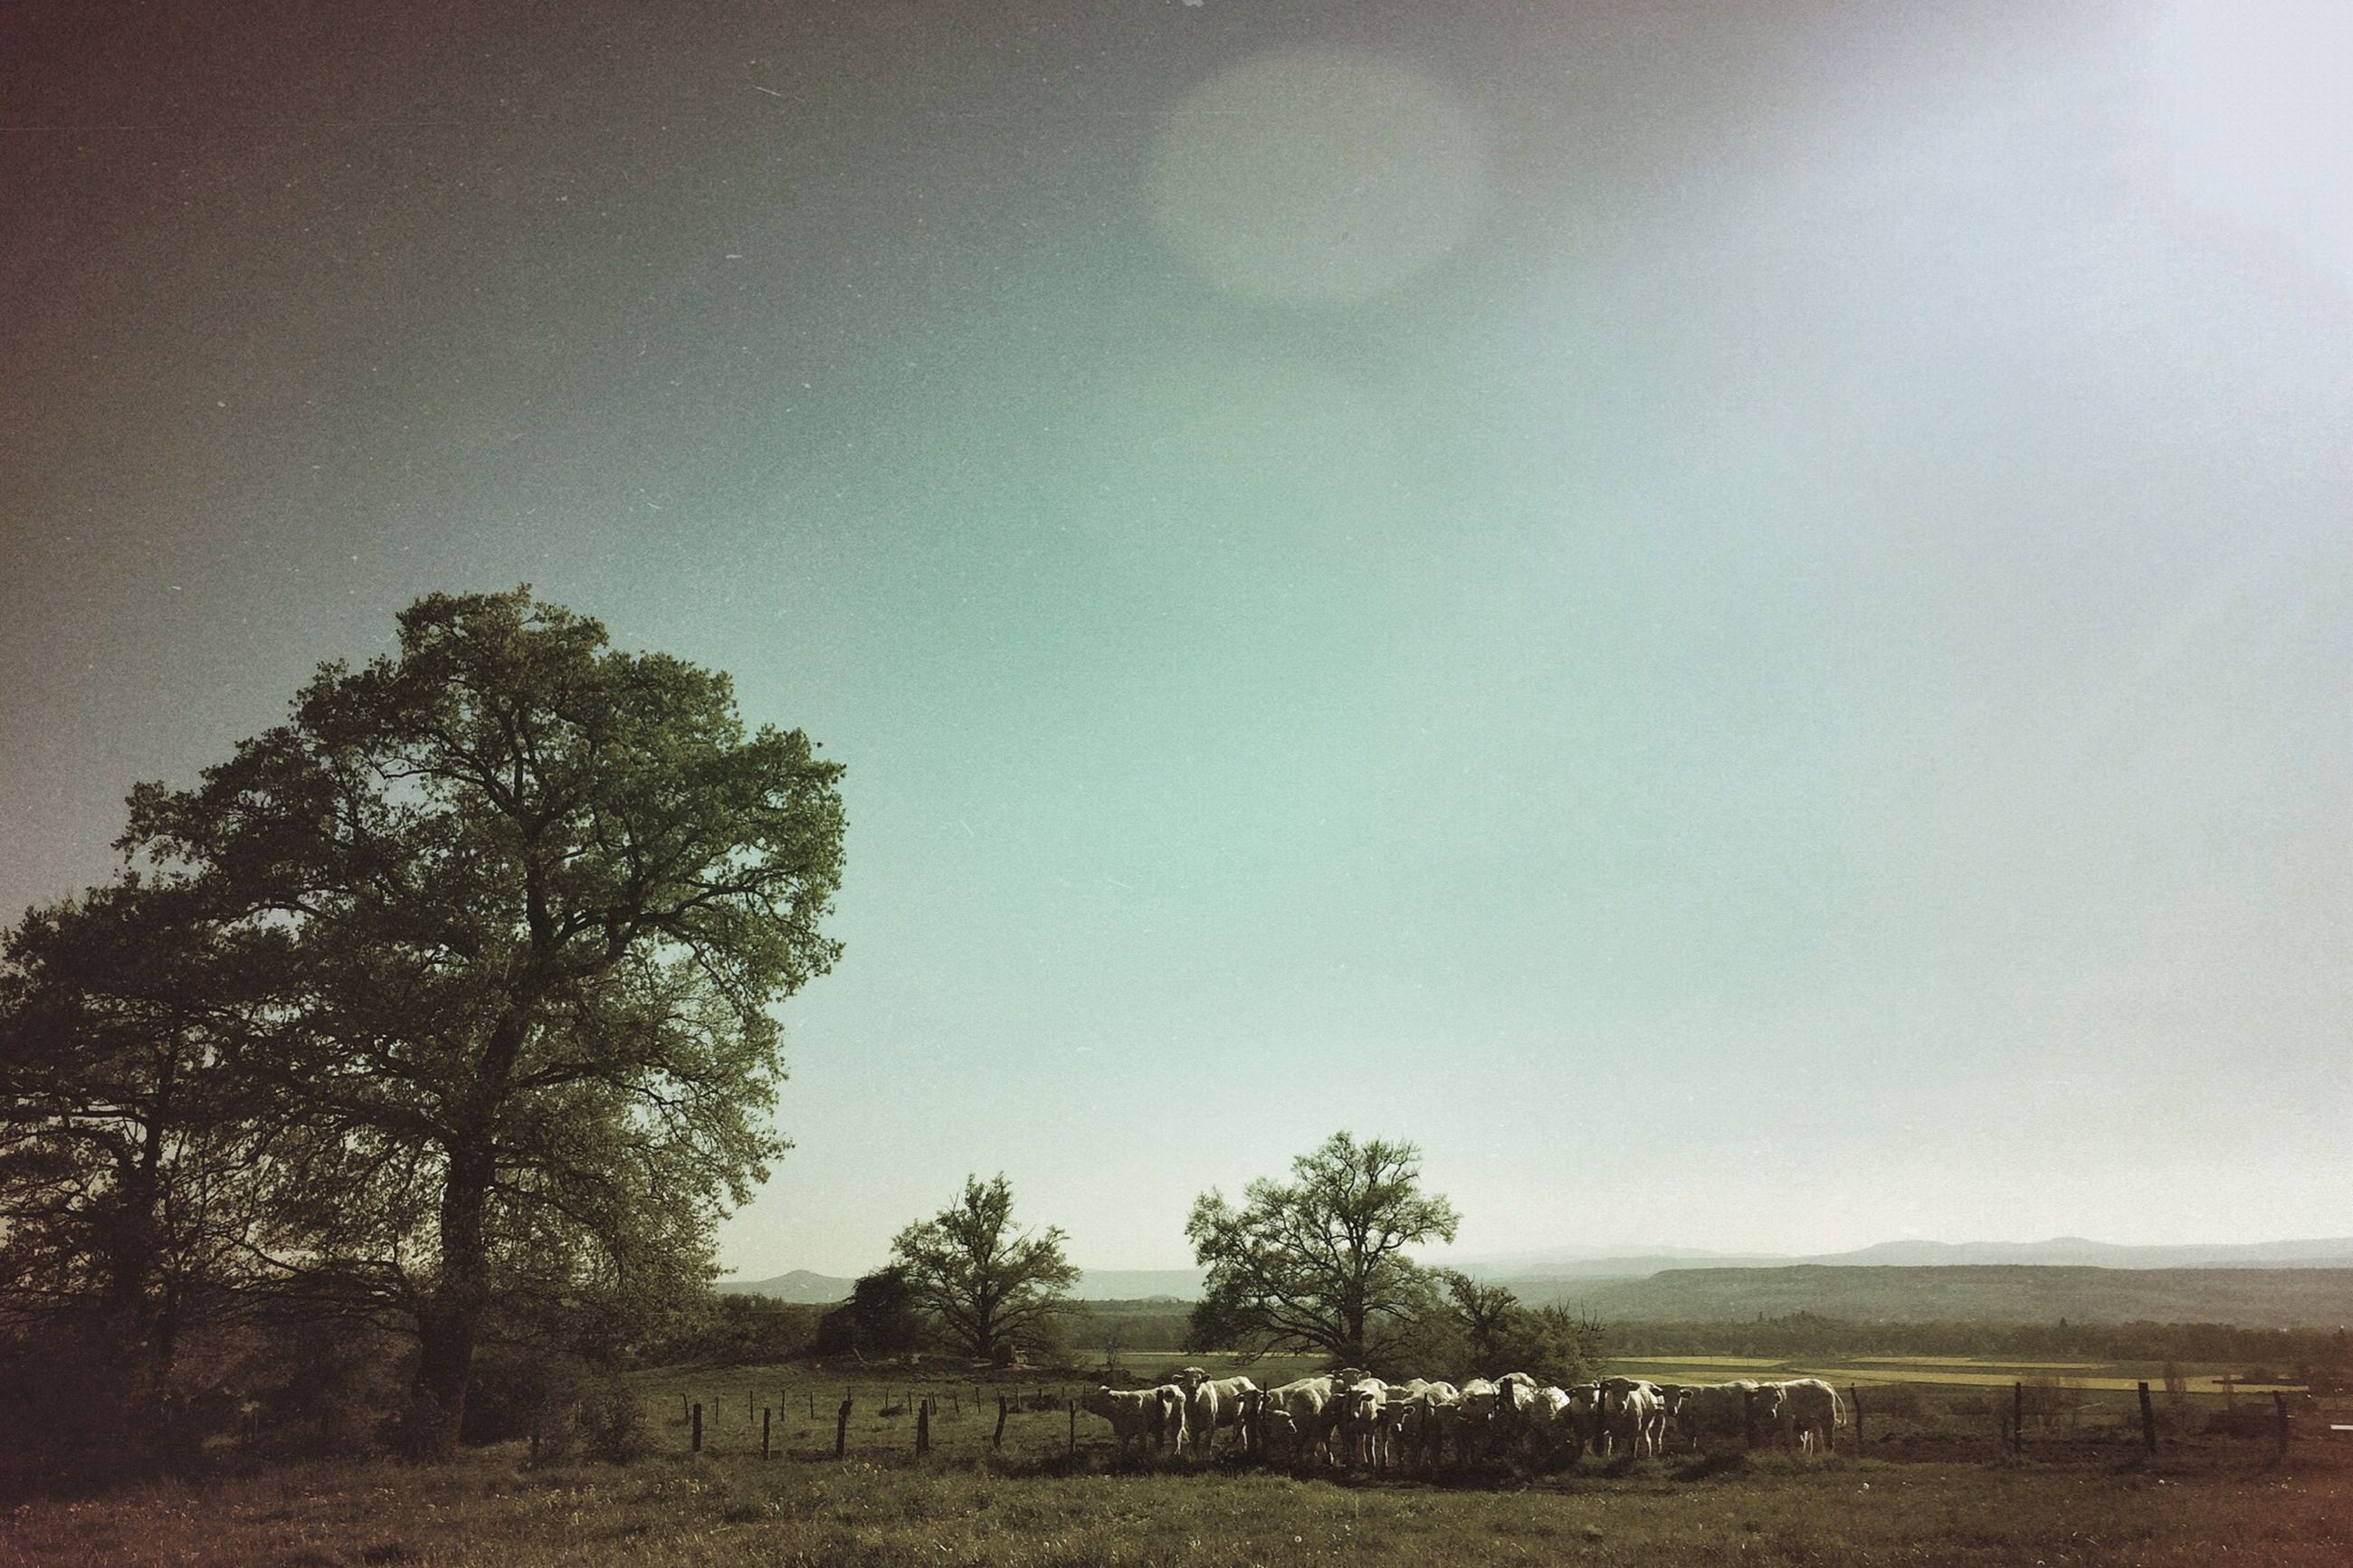 tree, field, landscape, tranquility, tranquil scene, rural scene, nature, clear sky, sky, growth, scenics, grass, beauty in nature, copy space, agriculture, non-urban scene, outdoors, day, remote, no people